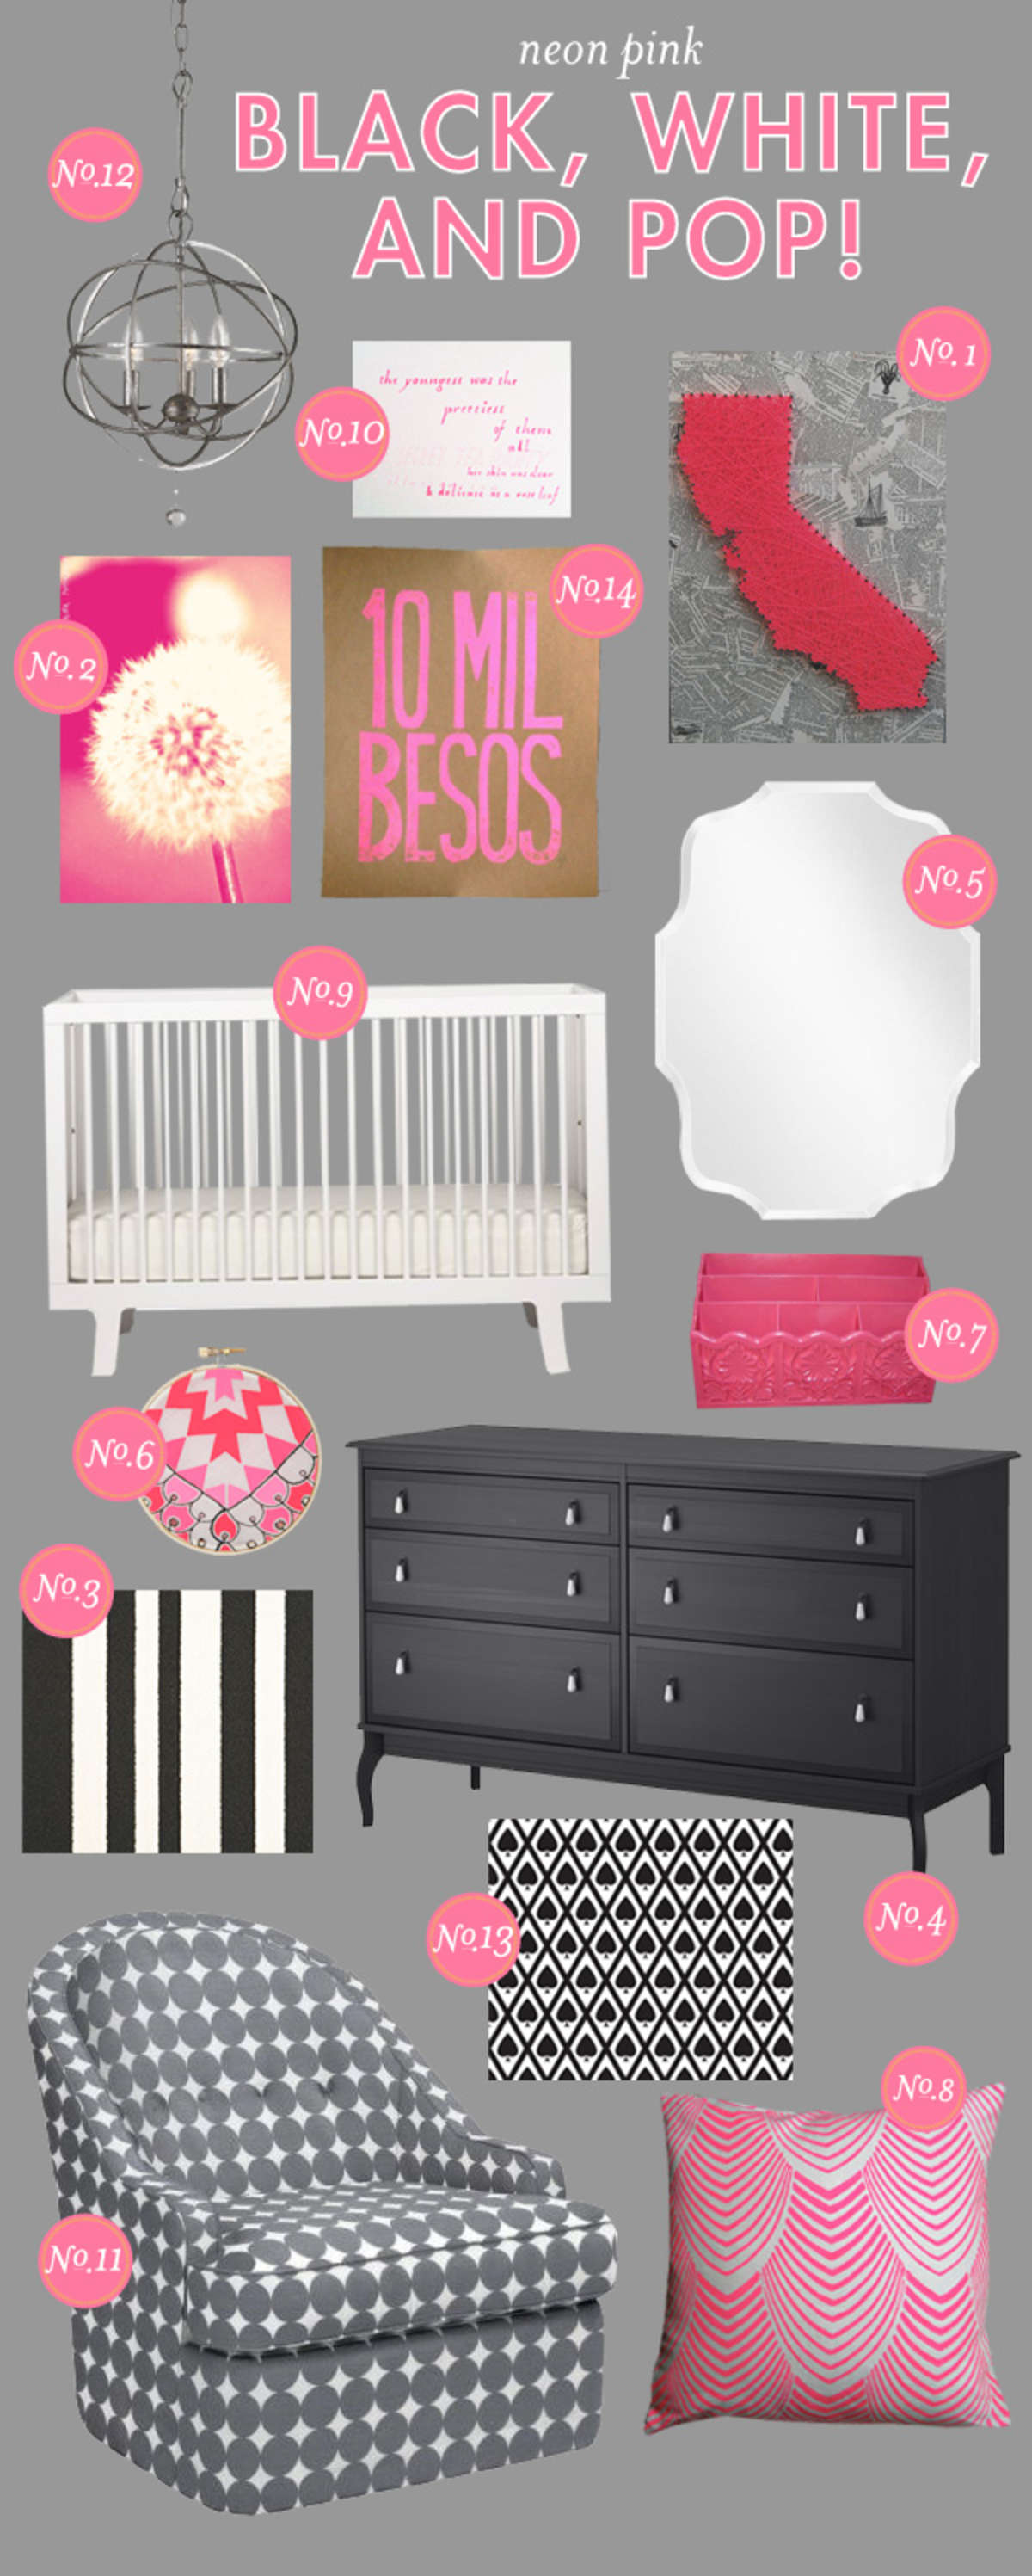 black white and pink nursery inspiration board